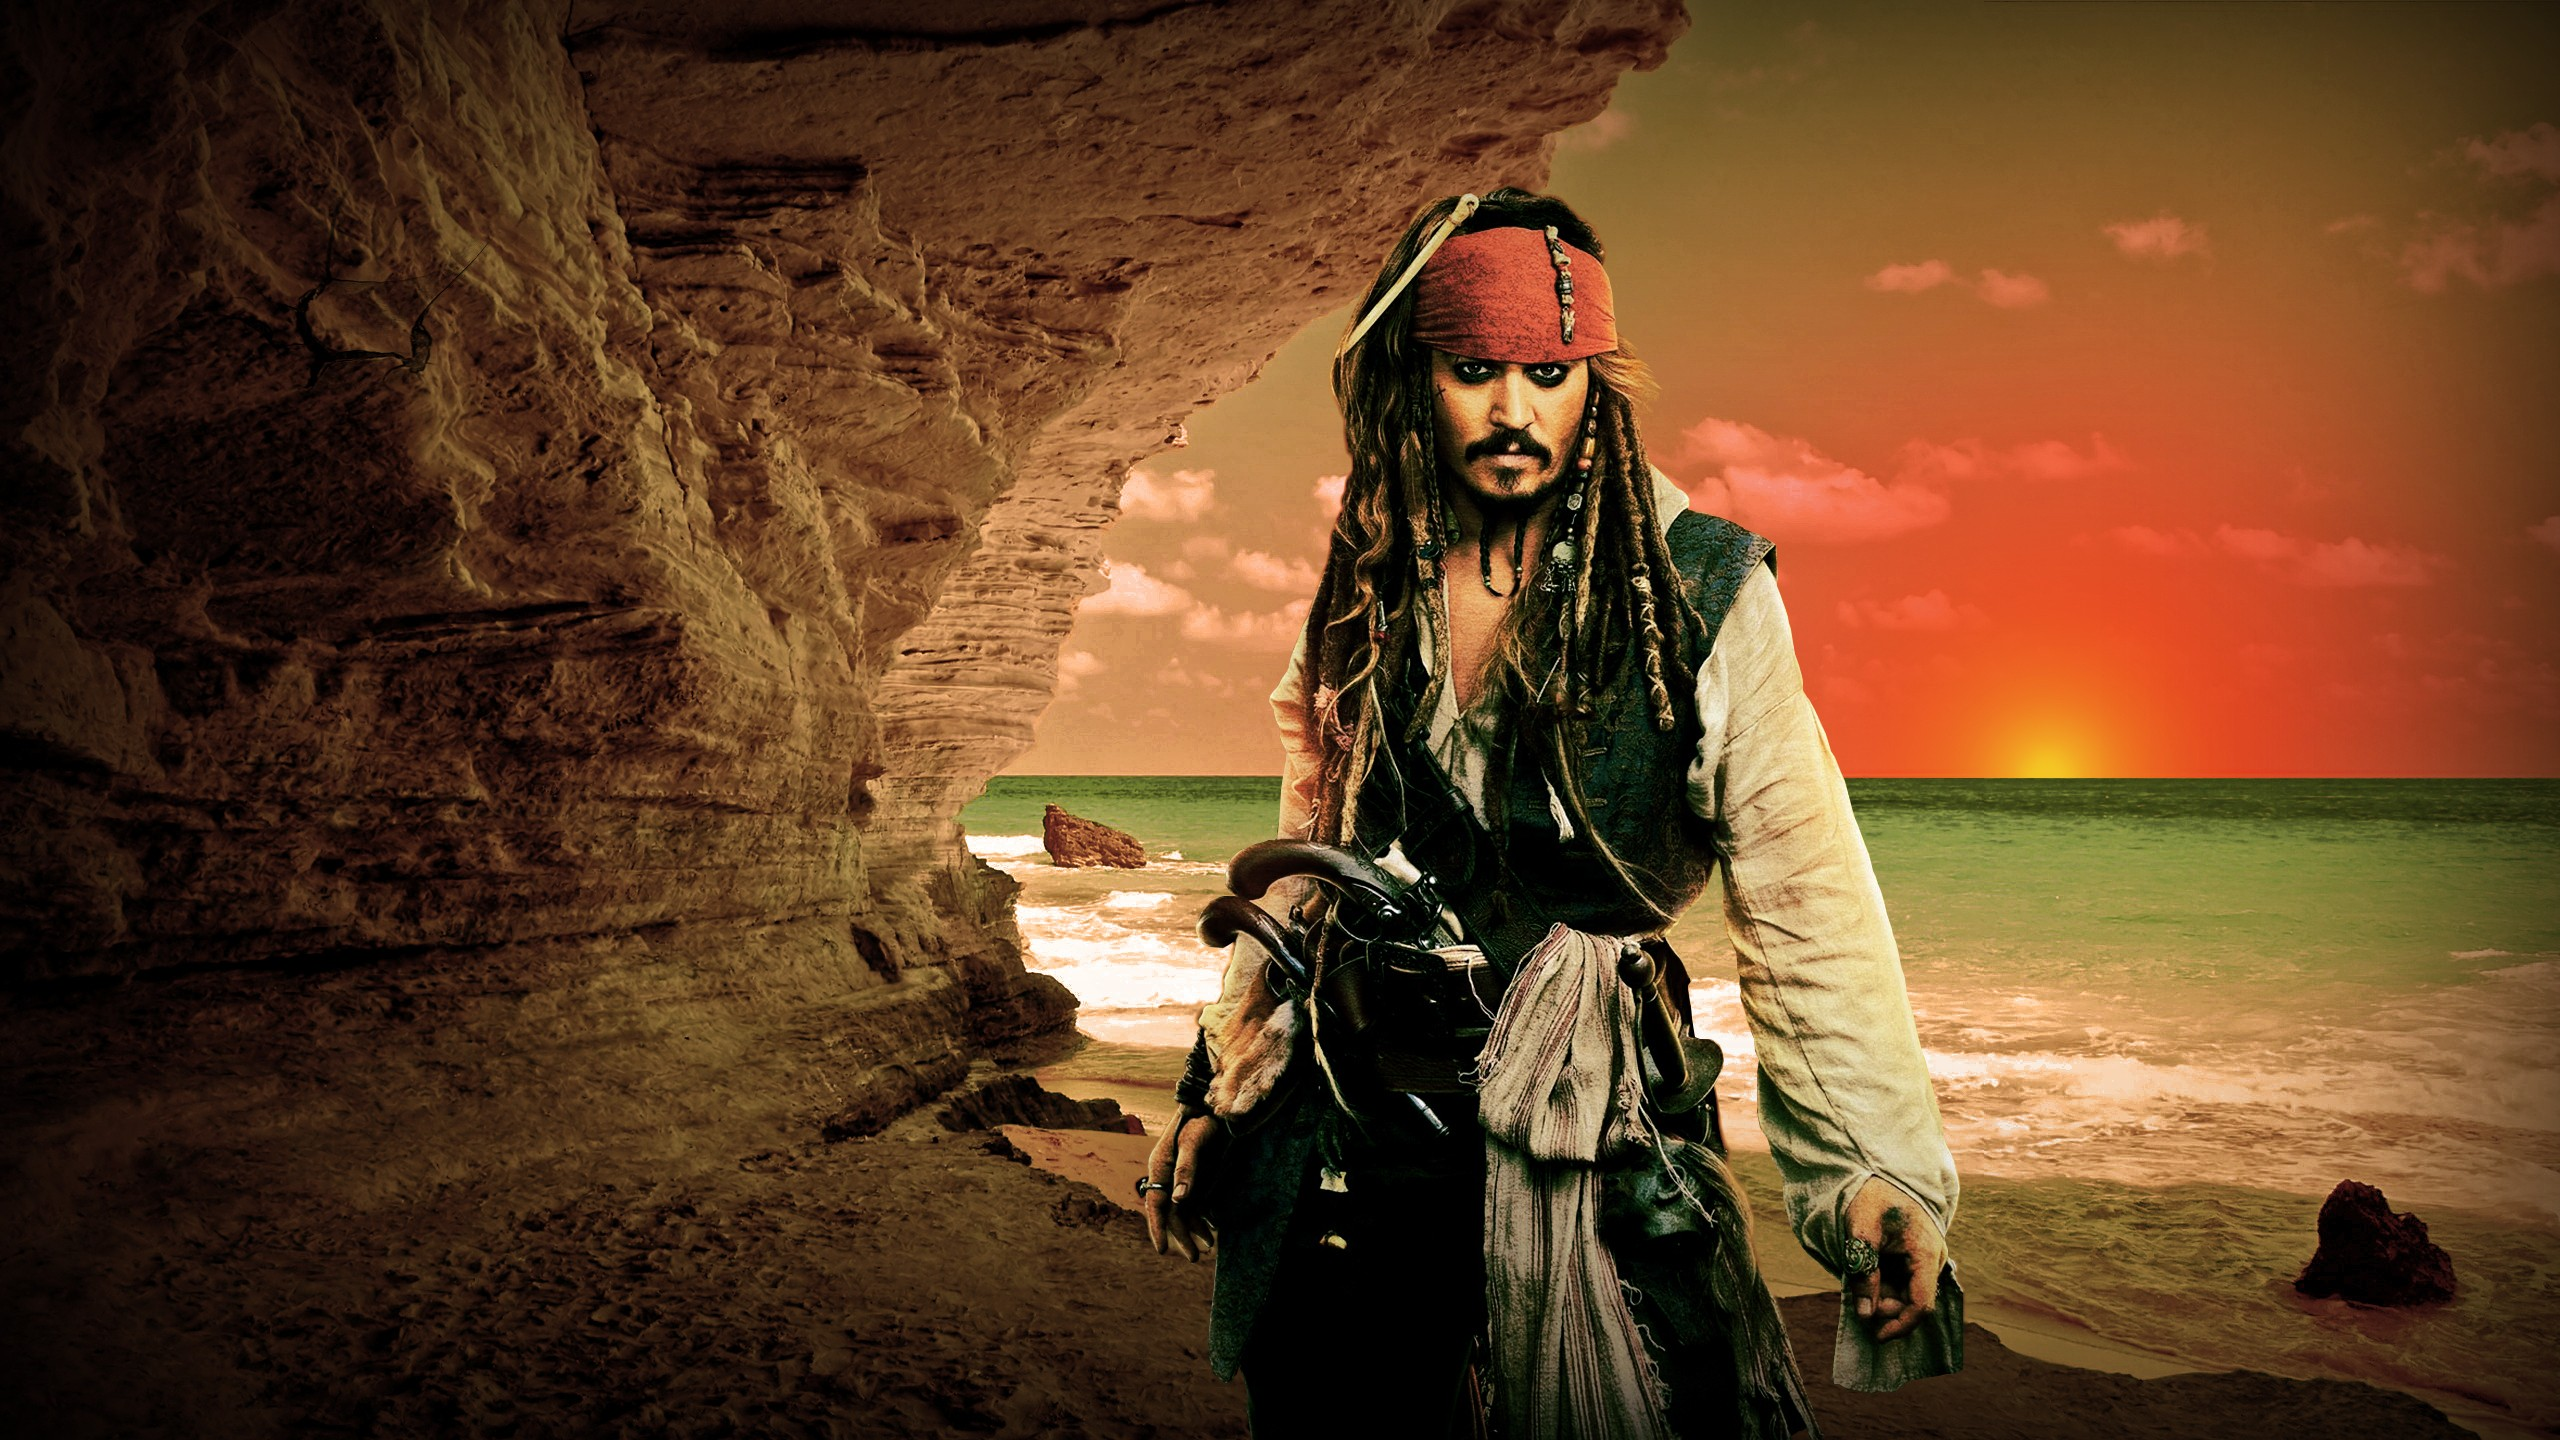 Pirates Of The Caribbean Computer Wallpapers, Desktop Backgrounds ...